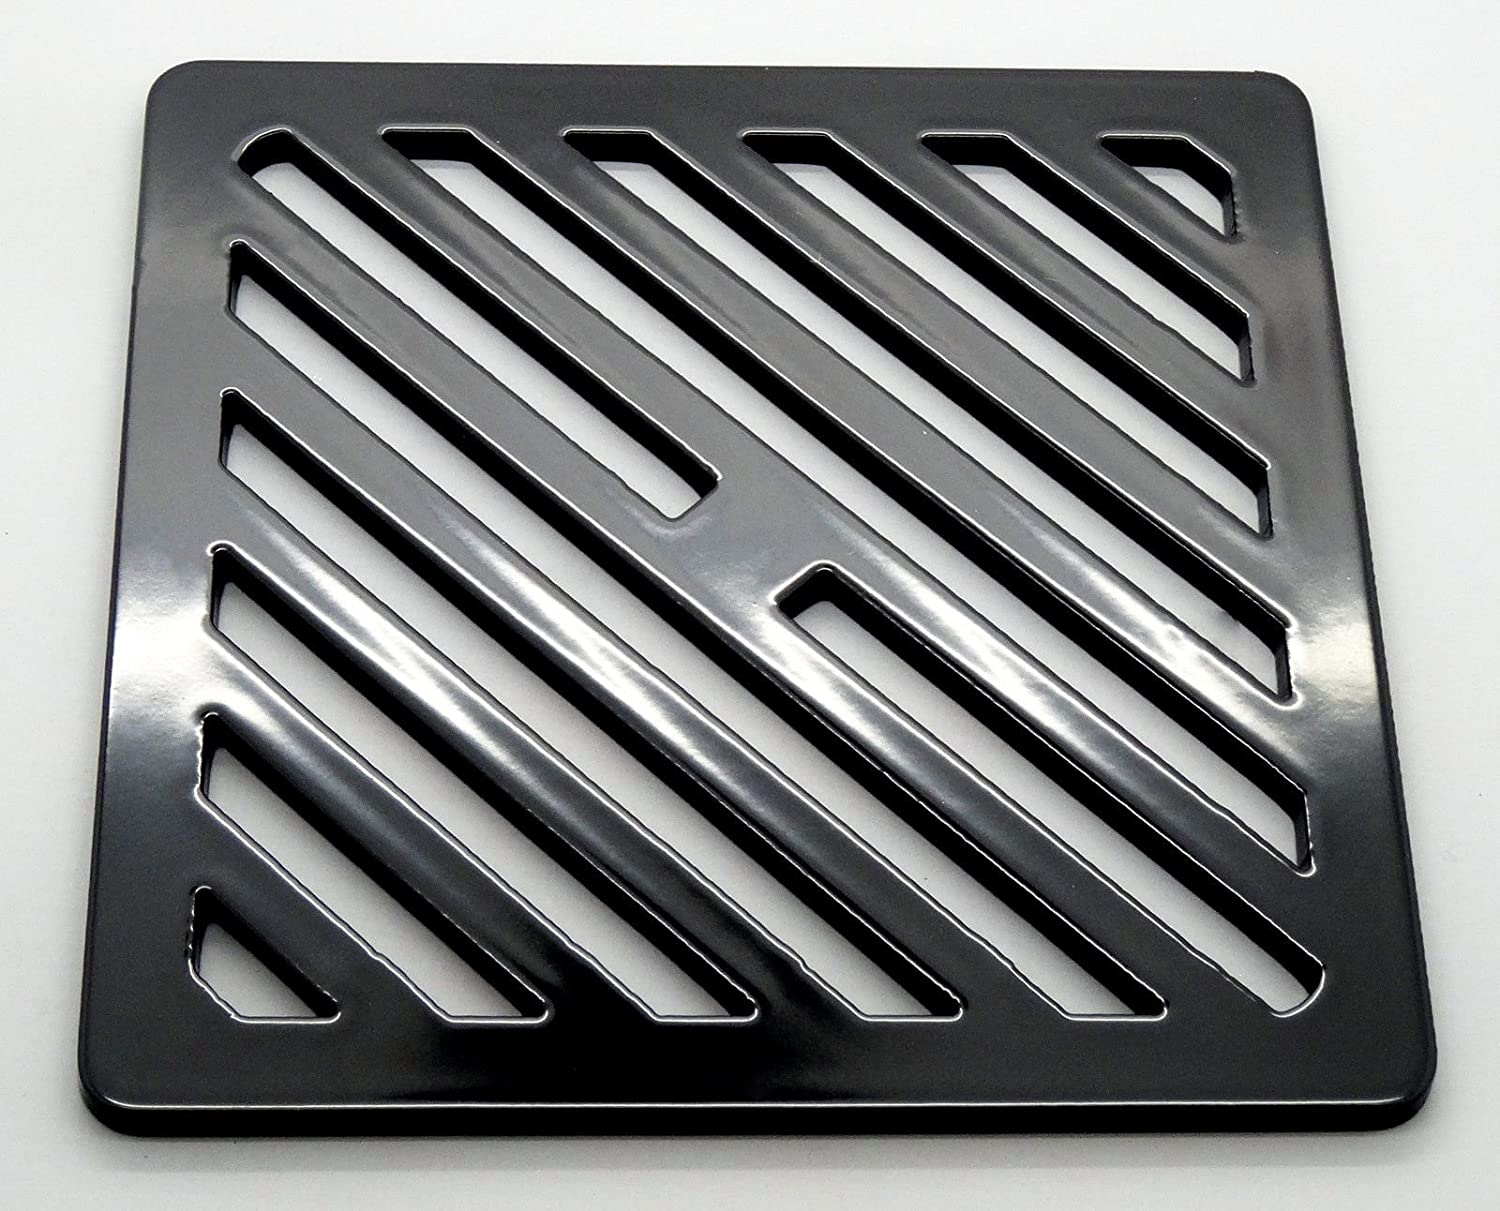 175mm 17.5cm Square solid metal steel Gully Grid Heavy Duty Drain Cover grate like cast iron, stronger Lakeland Steel Ltd